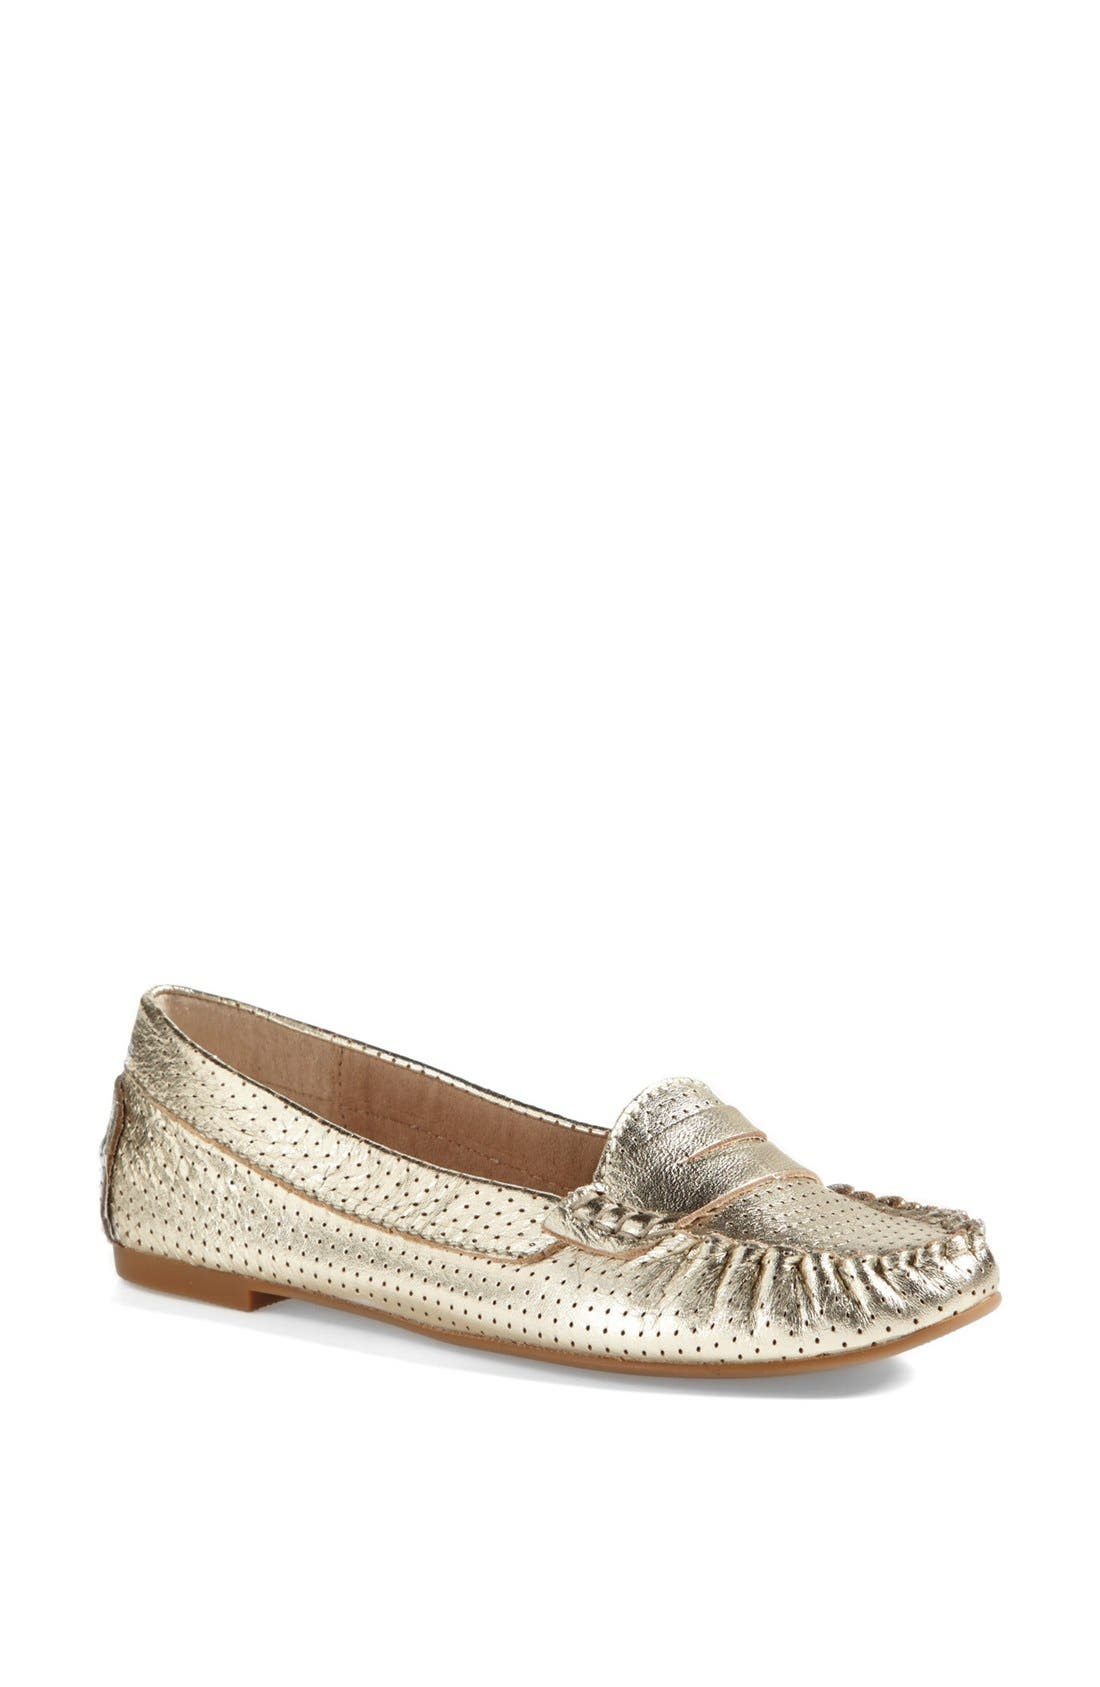 Alternate Image 1 Selected - Steve Madden 'Murphey' Leather Flat